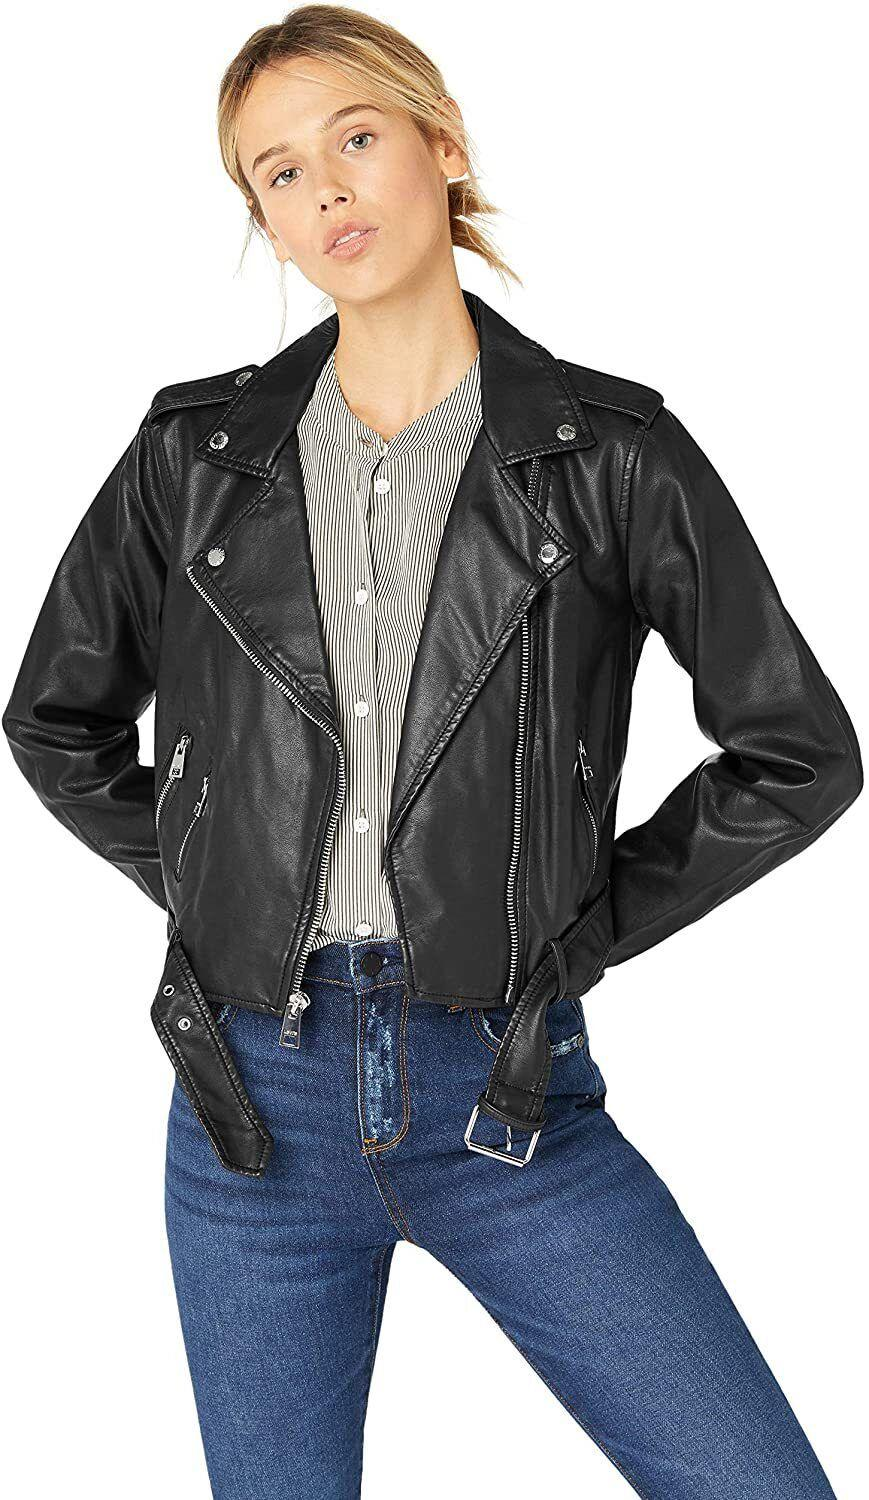 """Throw this on over any outfit to look instantly cooler.<br /><br /><strong>Promising review:</strong>""""I absolutely love this jacket!!! I've had several faux leather jackets that fit me okay, but this one fit me PERFECTLY, and it's well made. I think I'm going to order another one just to have it."""" —<a href=""""https://amzn.to/3e1K8sI"""" target=""""_blank"""" rel=""""nofollow noopener noreferrer"""" data-skimlinks-tracking=""""5753950"""" data-vars-affiliate=""""Amazon"""" data-vars-href=""""https://www.amazon.com/gp/customer-reviews/RO495SAVG13JI?tag=bfabby-20&ascsubtag=5753950%2C1%2C30%2Cmobile_web%2C0%2C0%2C0"""" data-vars-keywords=""""cleaning,fast fashion"""" data-vars-link-id=""""0"""" data-vars-price="""""""" data-vars-retailers=""""Amazon,Levi"""">Denise</a><br /><br /><strong>Get it from Amazon for<a href=""""https://amzn.to/3x504DA"""" target=""""_blank"""" rel=""""nofollow noopener noreferrer"""" data-skimlinks-tracking=""""5753950"""" data-vars-affiliate=""""Amazon"""" data-vars-asin=""""B07FDL5WJN"""" data-vars-href=""""https://www.amazon.com/dp/B07FDL5WJN?tag=bfabby-20&ascsubtag=5753950%2C1%2C30%2Cmobile_web%2C0%2C0%2C15973668"""" data-vars-keywords=""""cleaning,fast fashion"""" data-vars-link-id=""""15973668"""" data-vars-price="""""""" data-vars-product-id=""""18042258"""" data-vars-product-img=""""https://m.media-amazon.com/images/I/31n-xUC9QRL.jpg"""" data-vars-product-title=""""Levi's Women's Faux Leather Belted Motorcycle Jacket (Standard and Plus Sizes), plum, X-Small"""" data-vars-retailers=""""Amazon,Levi"""">$120</a>(available in sizes XS-4X and in 31 colors).</strong>"""